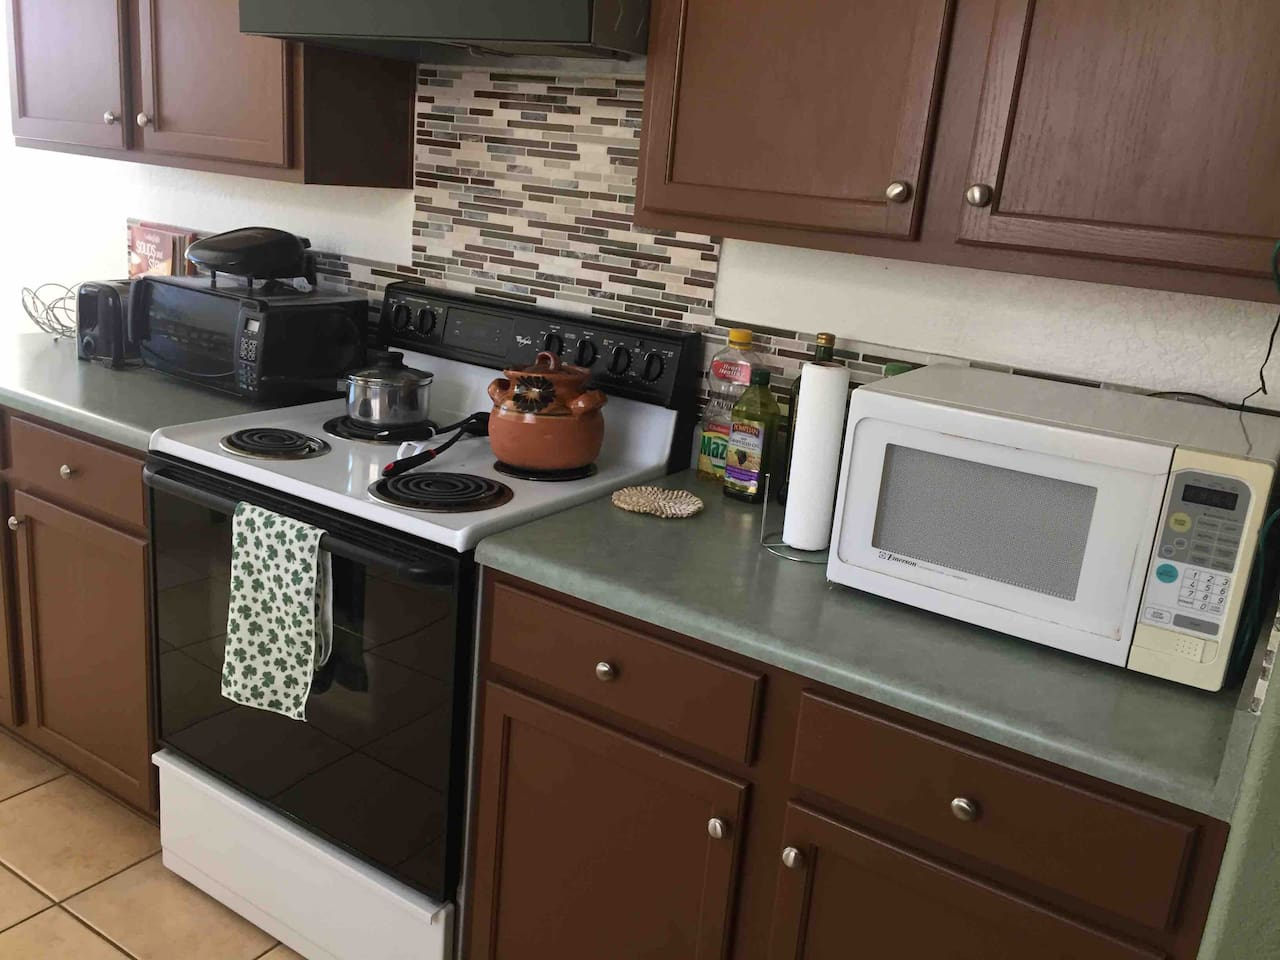 Microwave, stove, little oven, grill, toaster